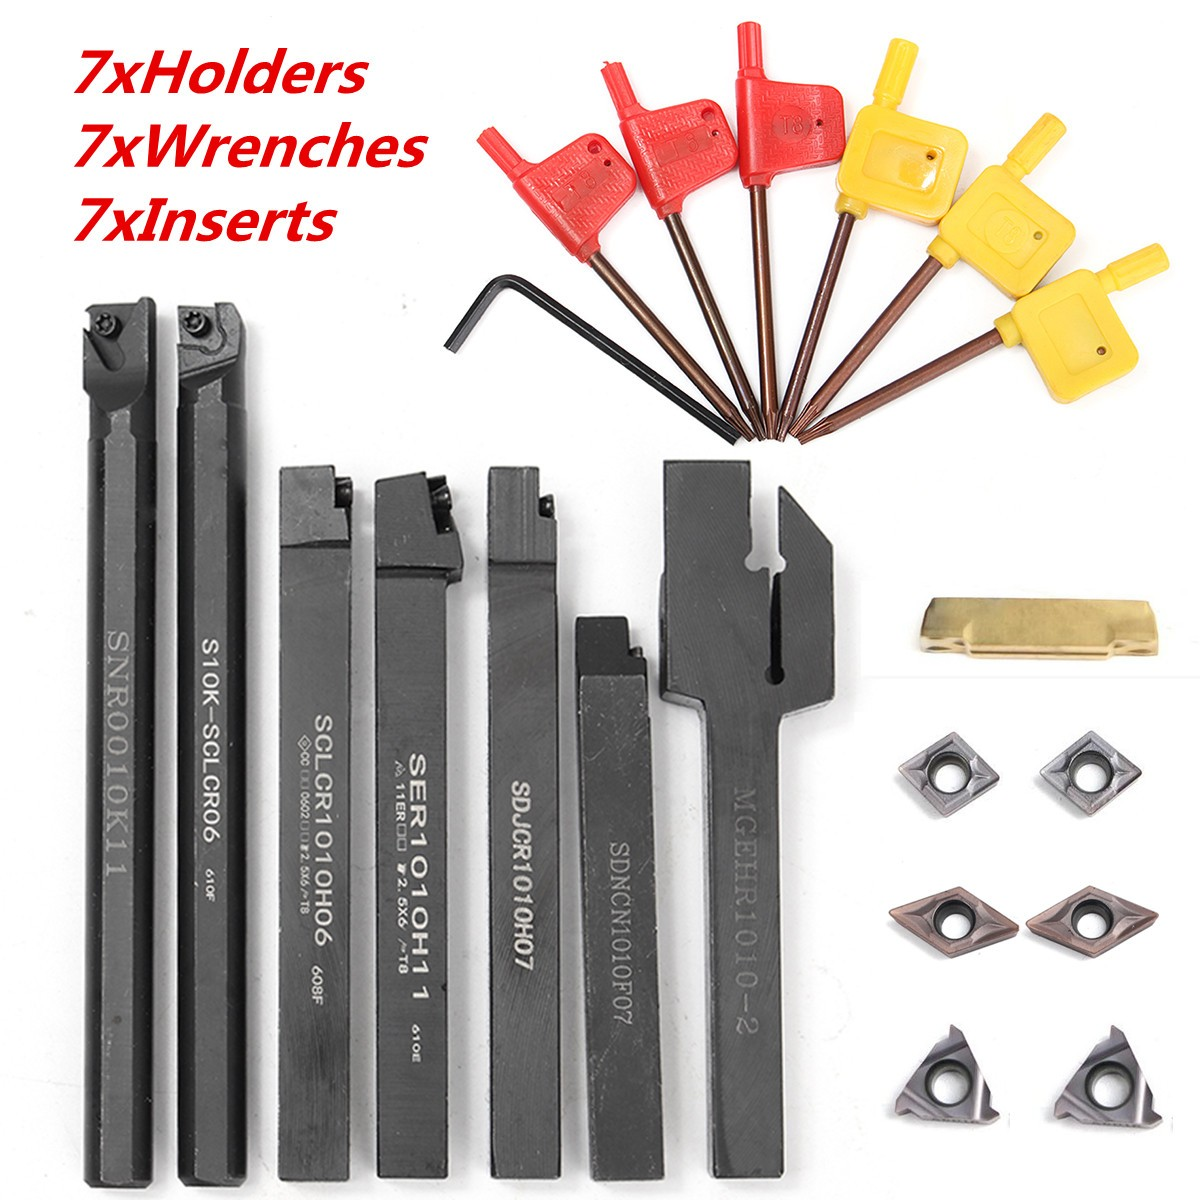 21PCS/SET DCMT CCMT Carbide Insert + 10mm Boring Bar Tool Holder + Wrench For Lathe Turning Tool hot sale 7pcs set of 12mm cnc lathe turning tool holder boring bar with dcmt tcmt ccmt cutting insert with wrench